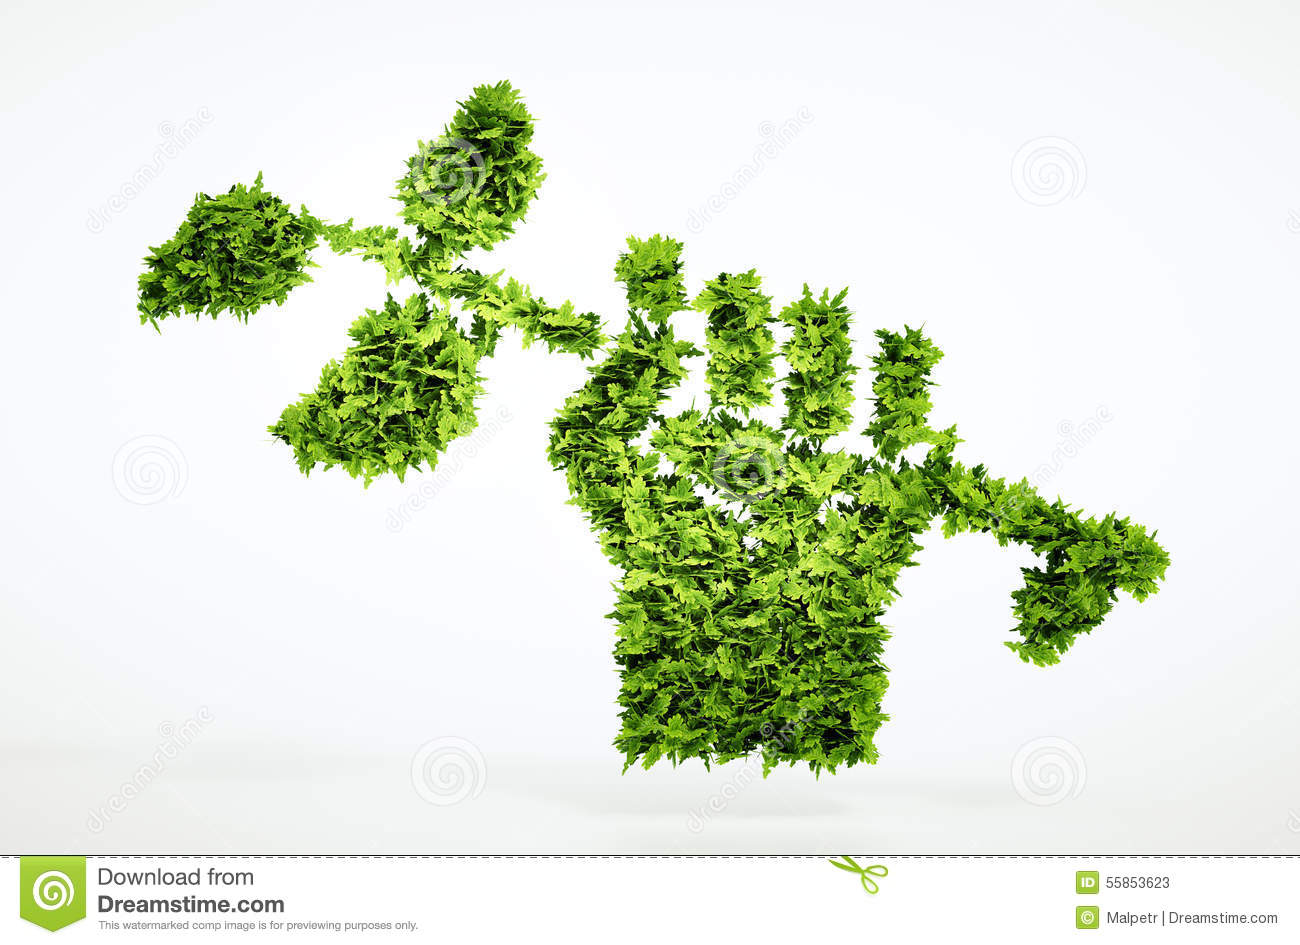 green revolution The green revolution in india importance of an individualized approach with many thanks to anna jungbluth, bhupendra khetani, bashar zeitoon, jorge phillips.